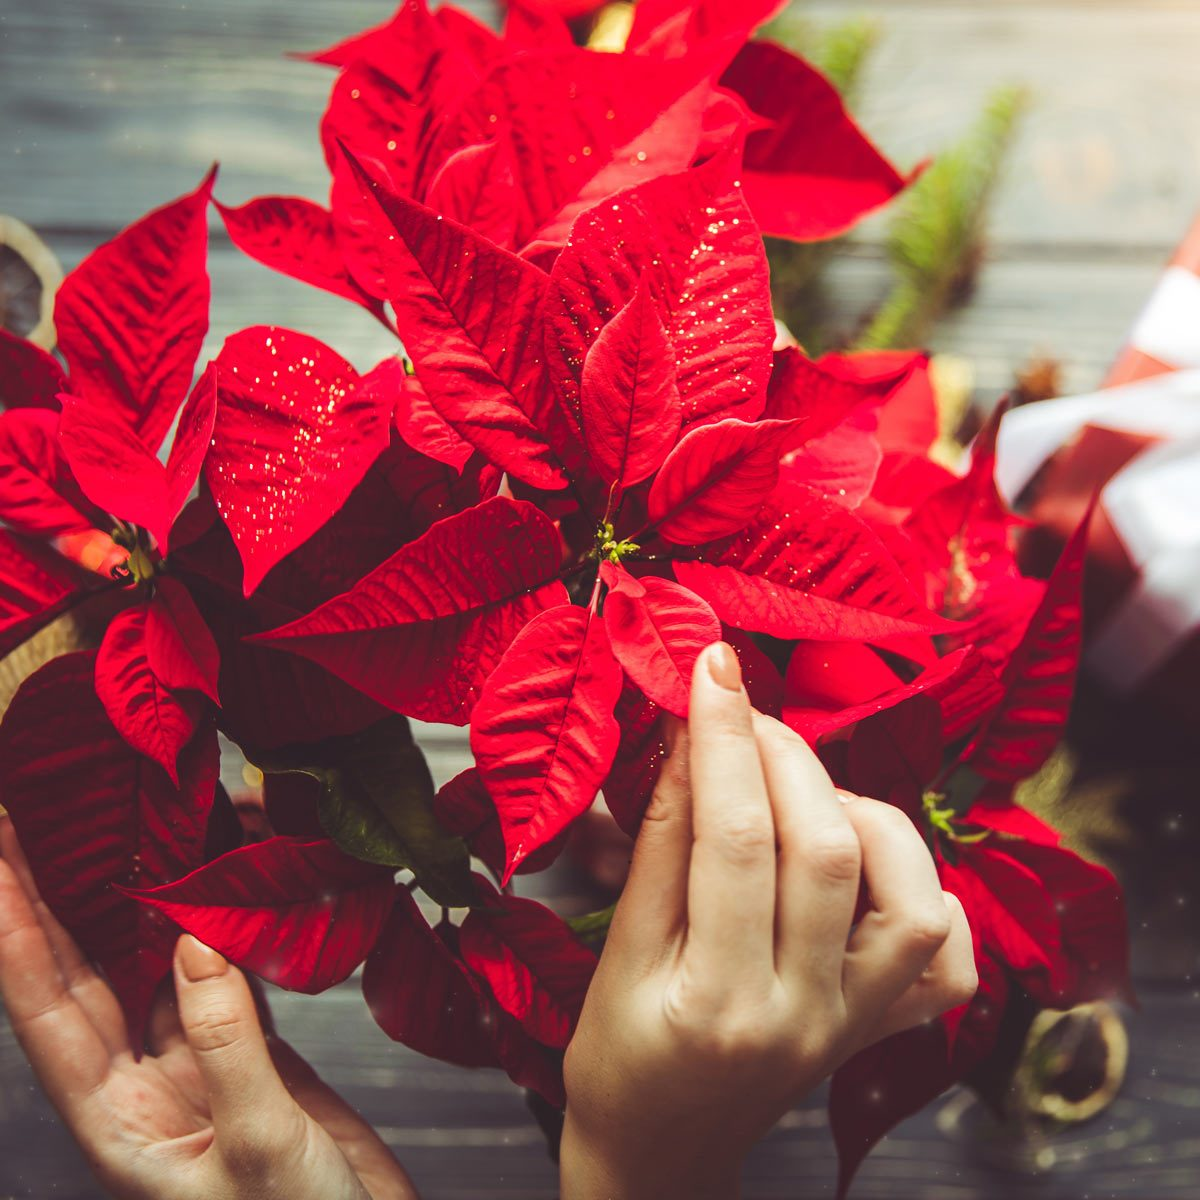 How To Care For Christmas Flowers The Family Handyman